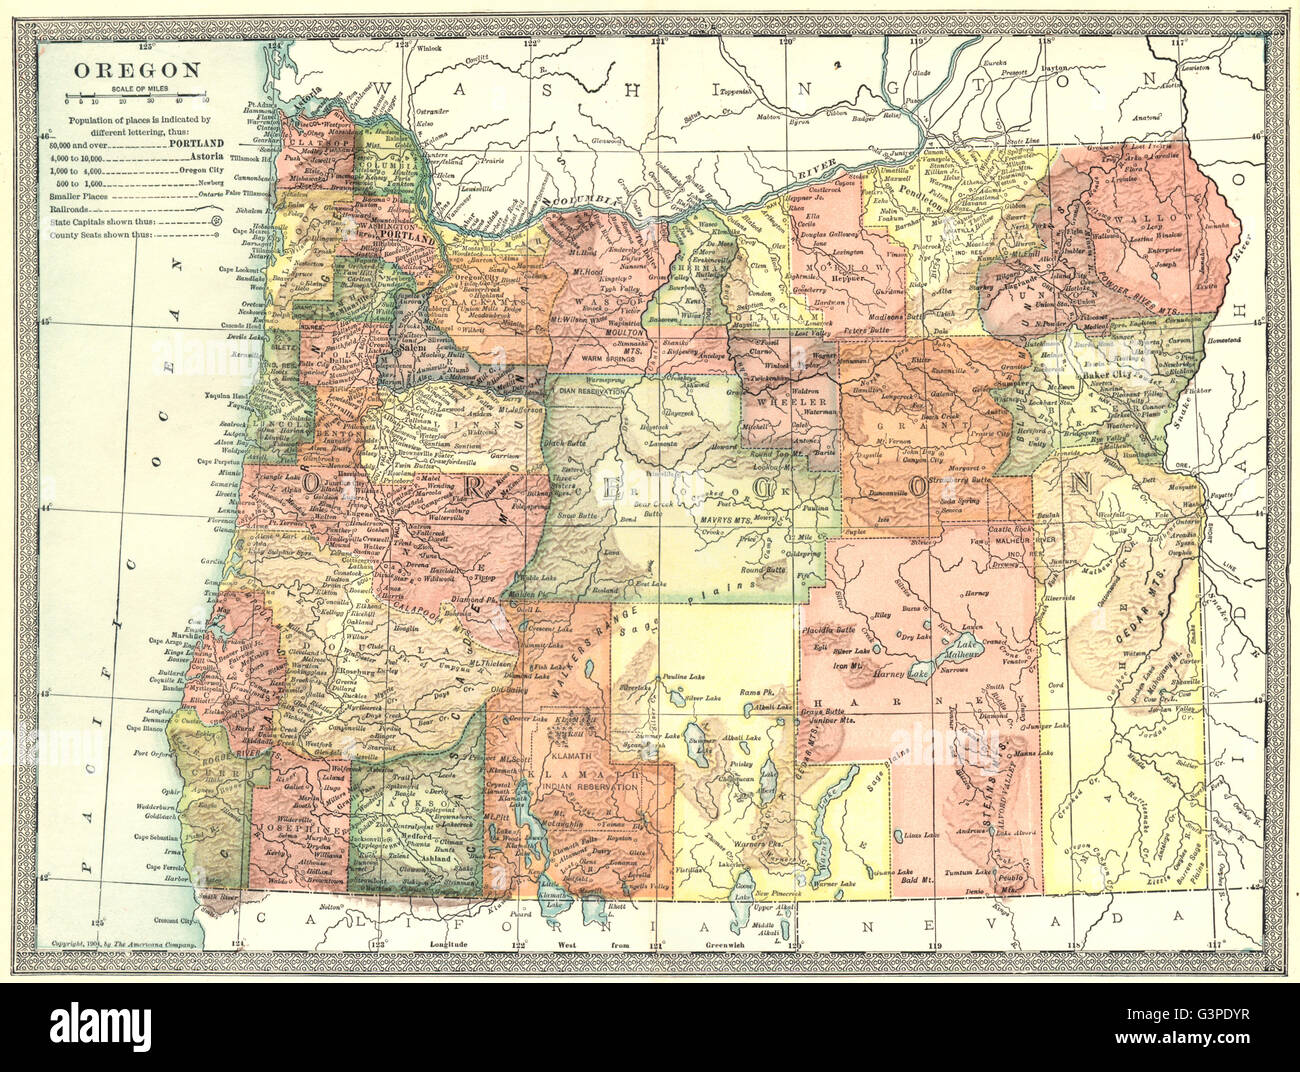 Map Of Oregon State Stock Photos & Map Of Oregon State Stock Images ...